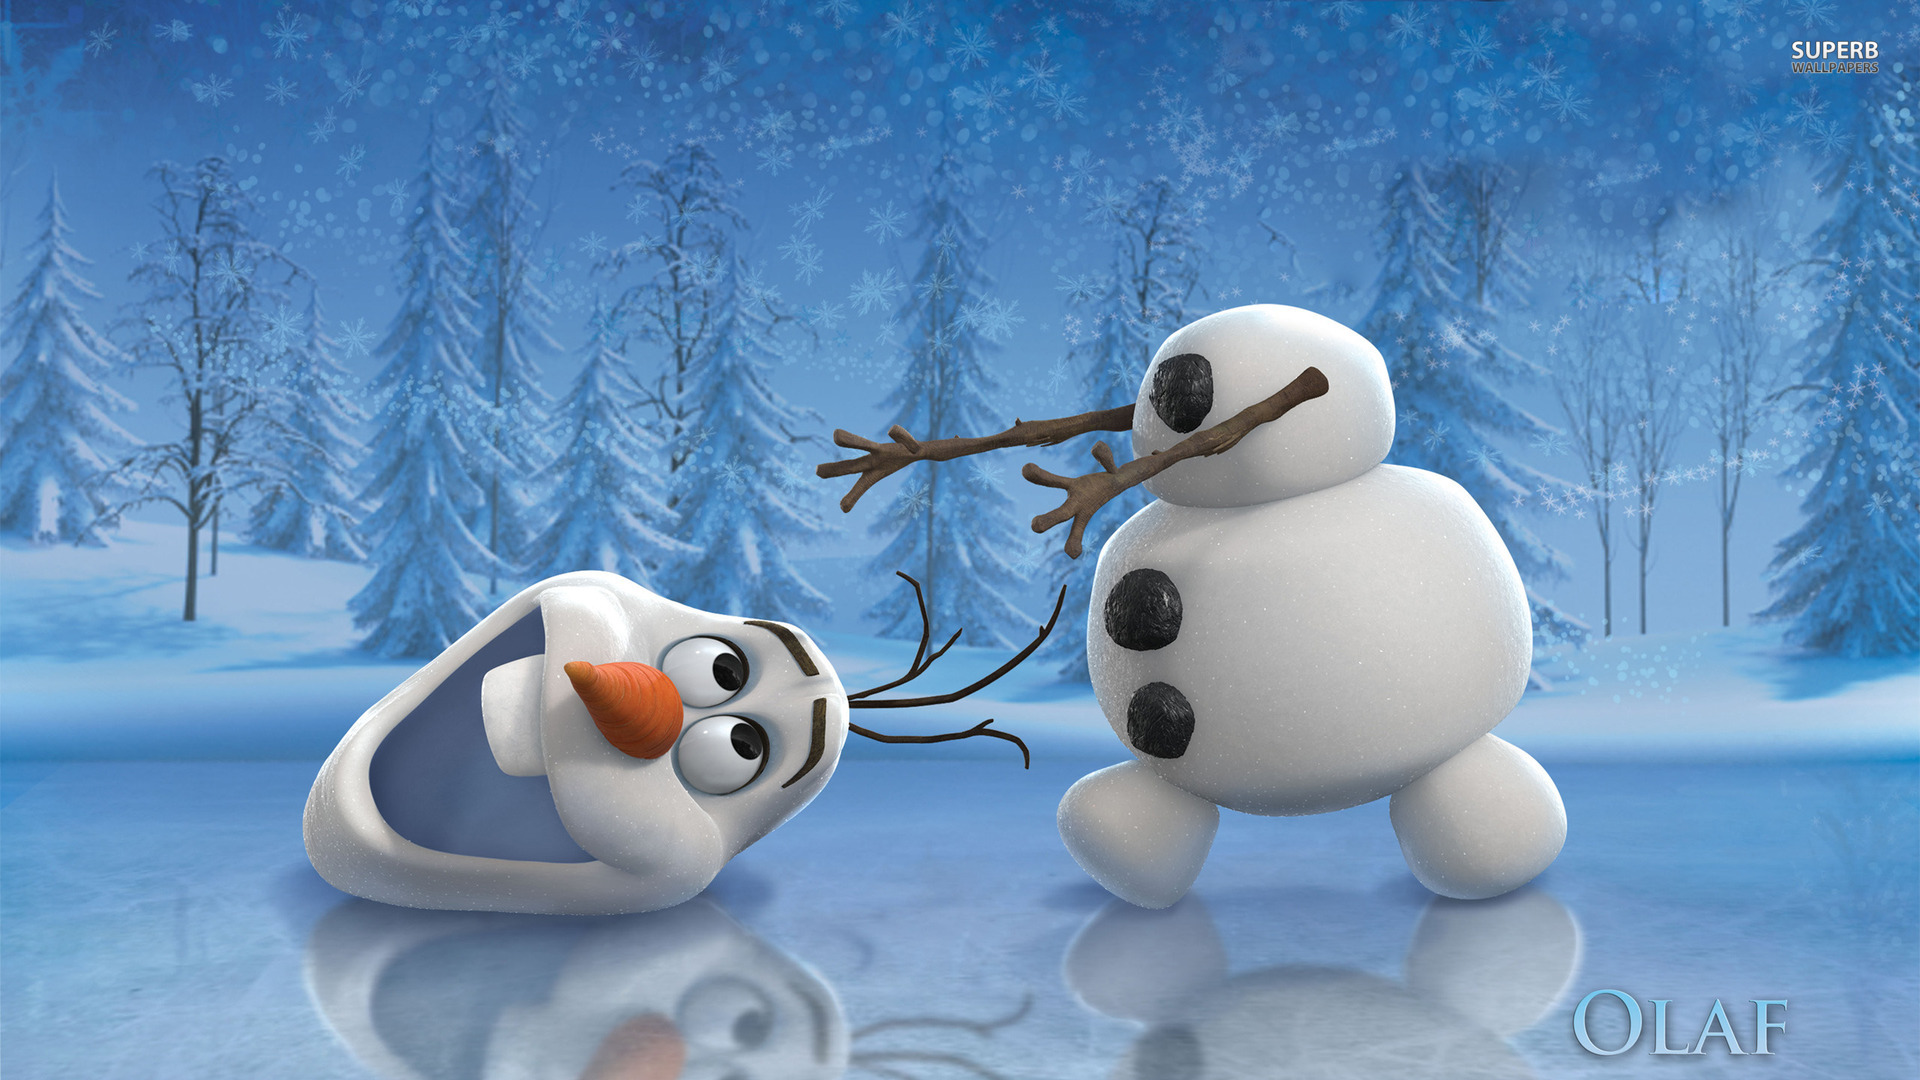 Image funny olaf in frozen movie hd wallpapersg funny olaf in frozen movie hd wallpapersg voltagebd Images